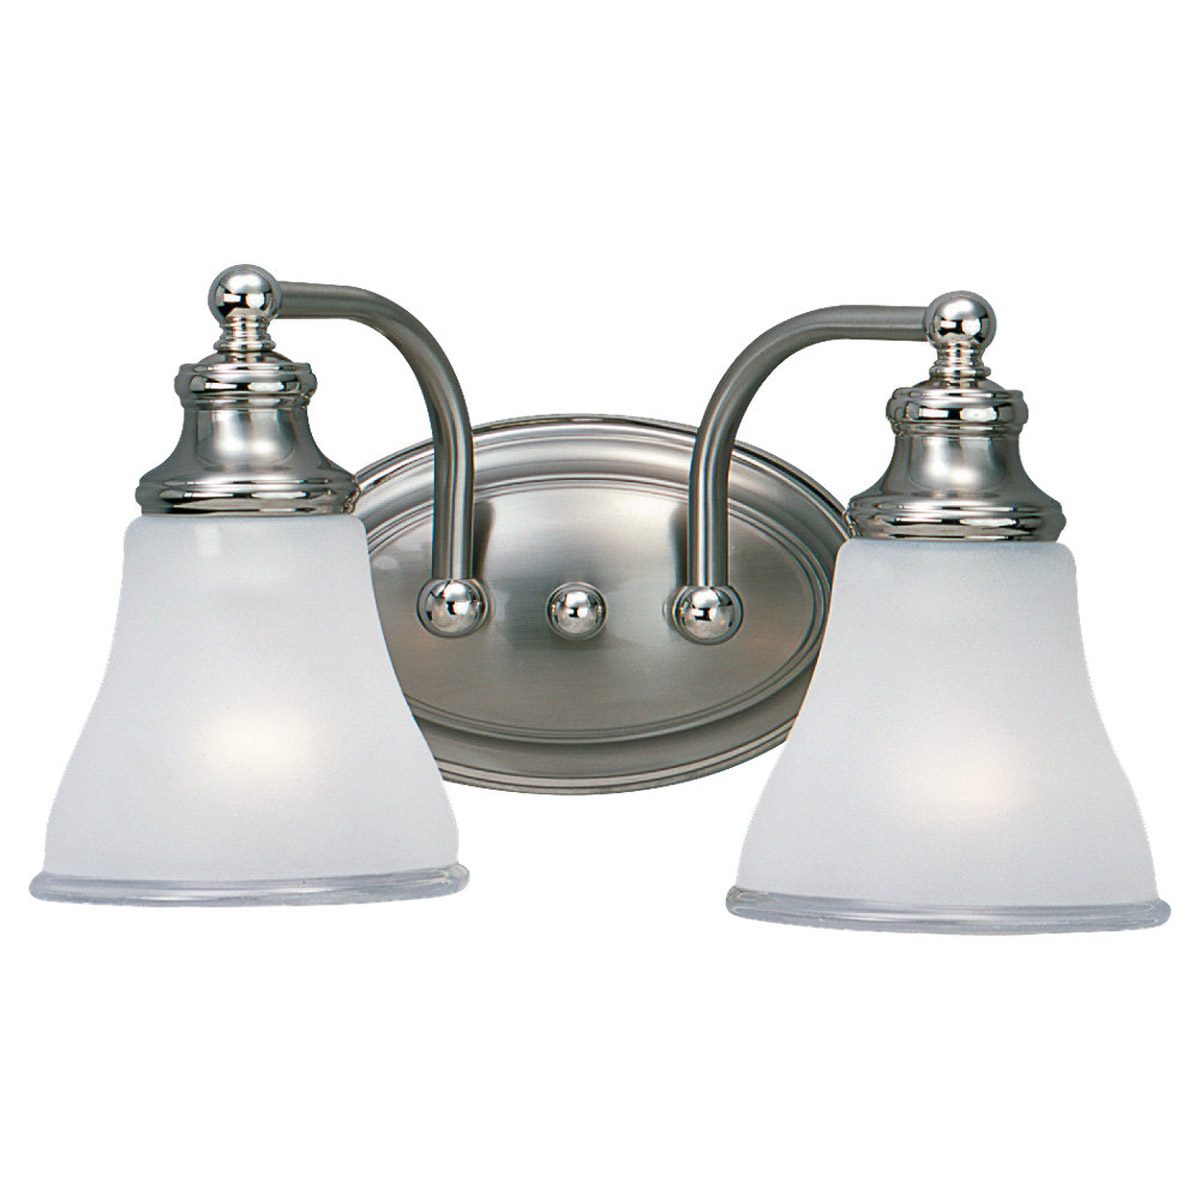 Sea Gull Lighting Alexandria 2 Light Bath Vanity in Two Tone Nickel 40010-773